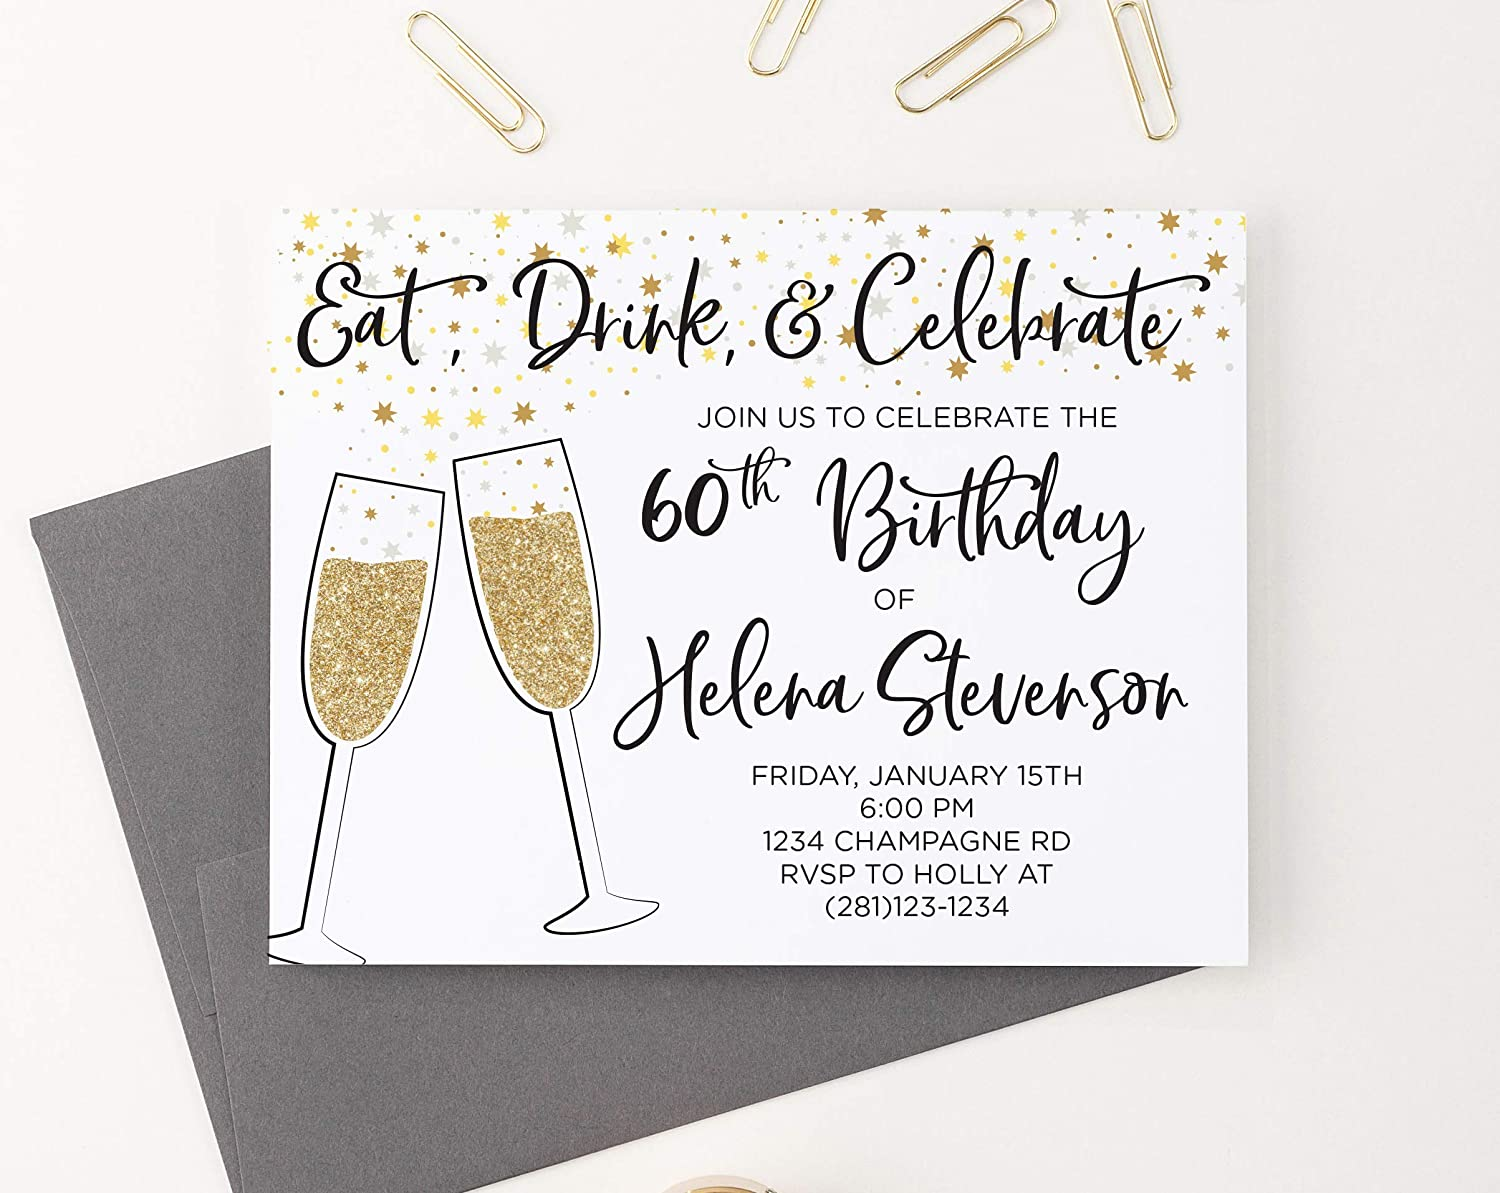 Amazon.com: Black and Gold Champagne 40th Birthday Invitations for Women, 50th  Birthday Invitation Cards for Women, 70th Birthday Invitations for Women,  Your choice of Age, Quantity and Envelope Color: Handmade